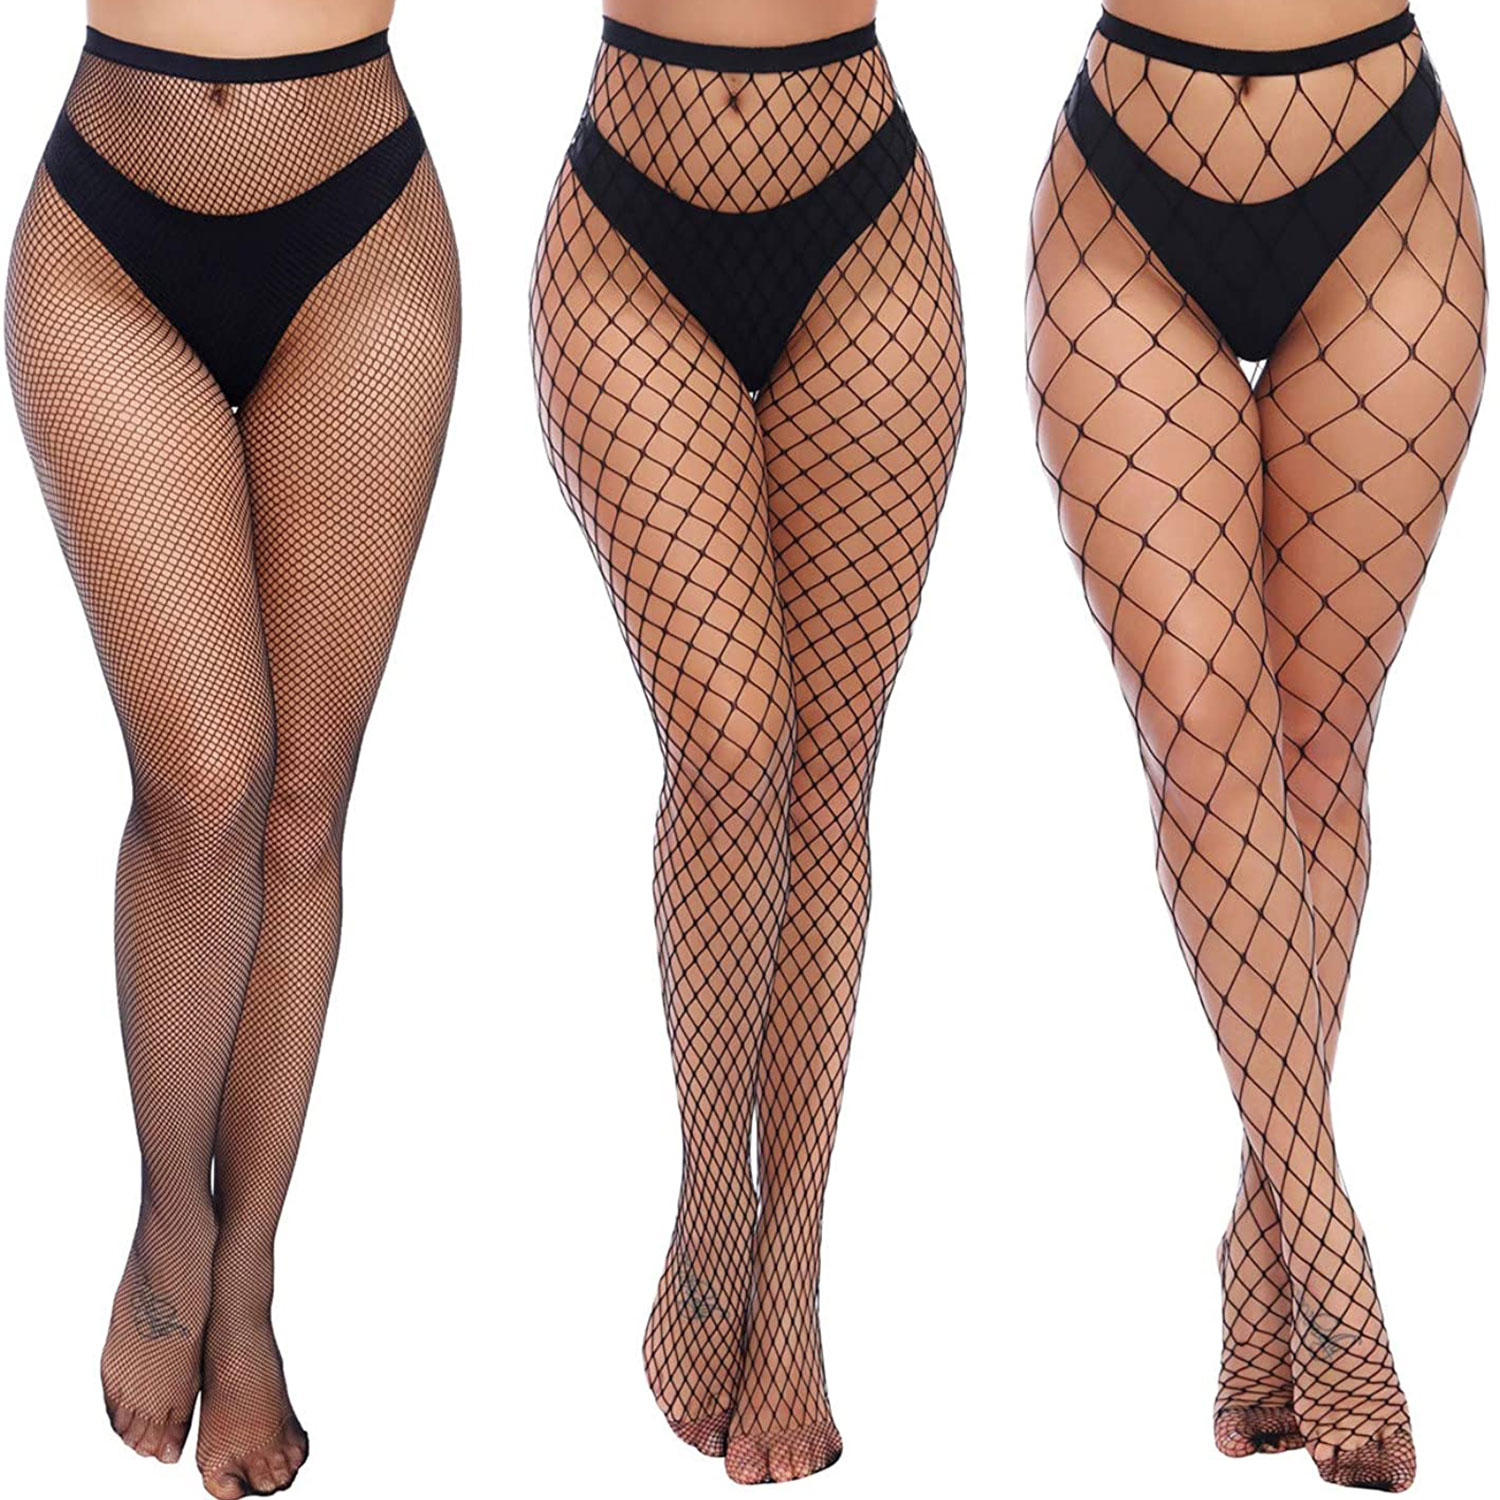 charmnight women's high waist tights fishnet stockings